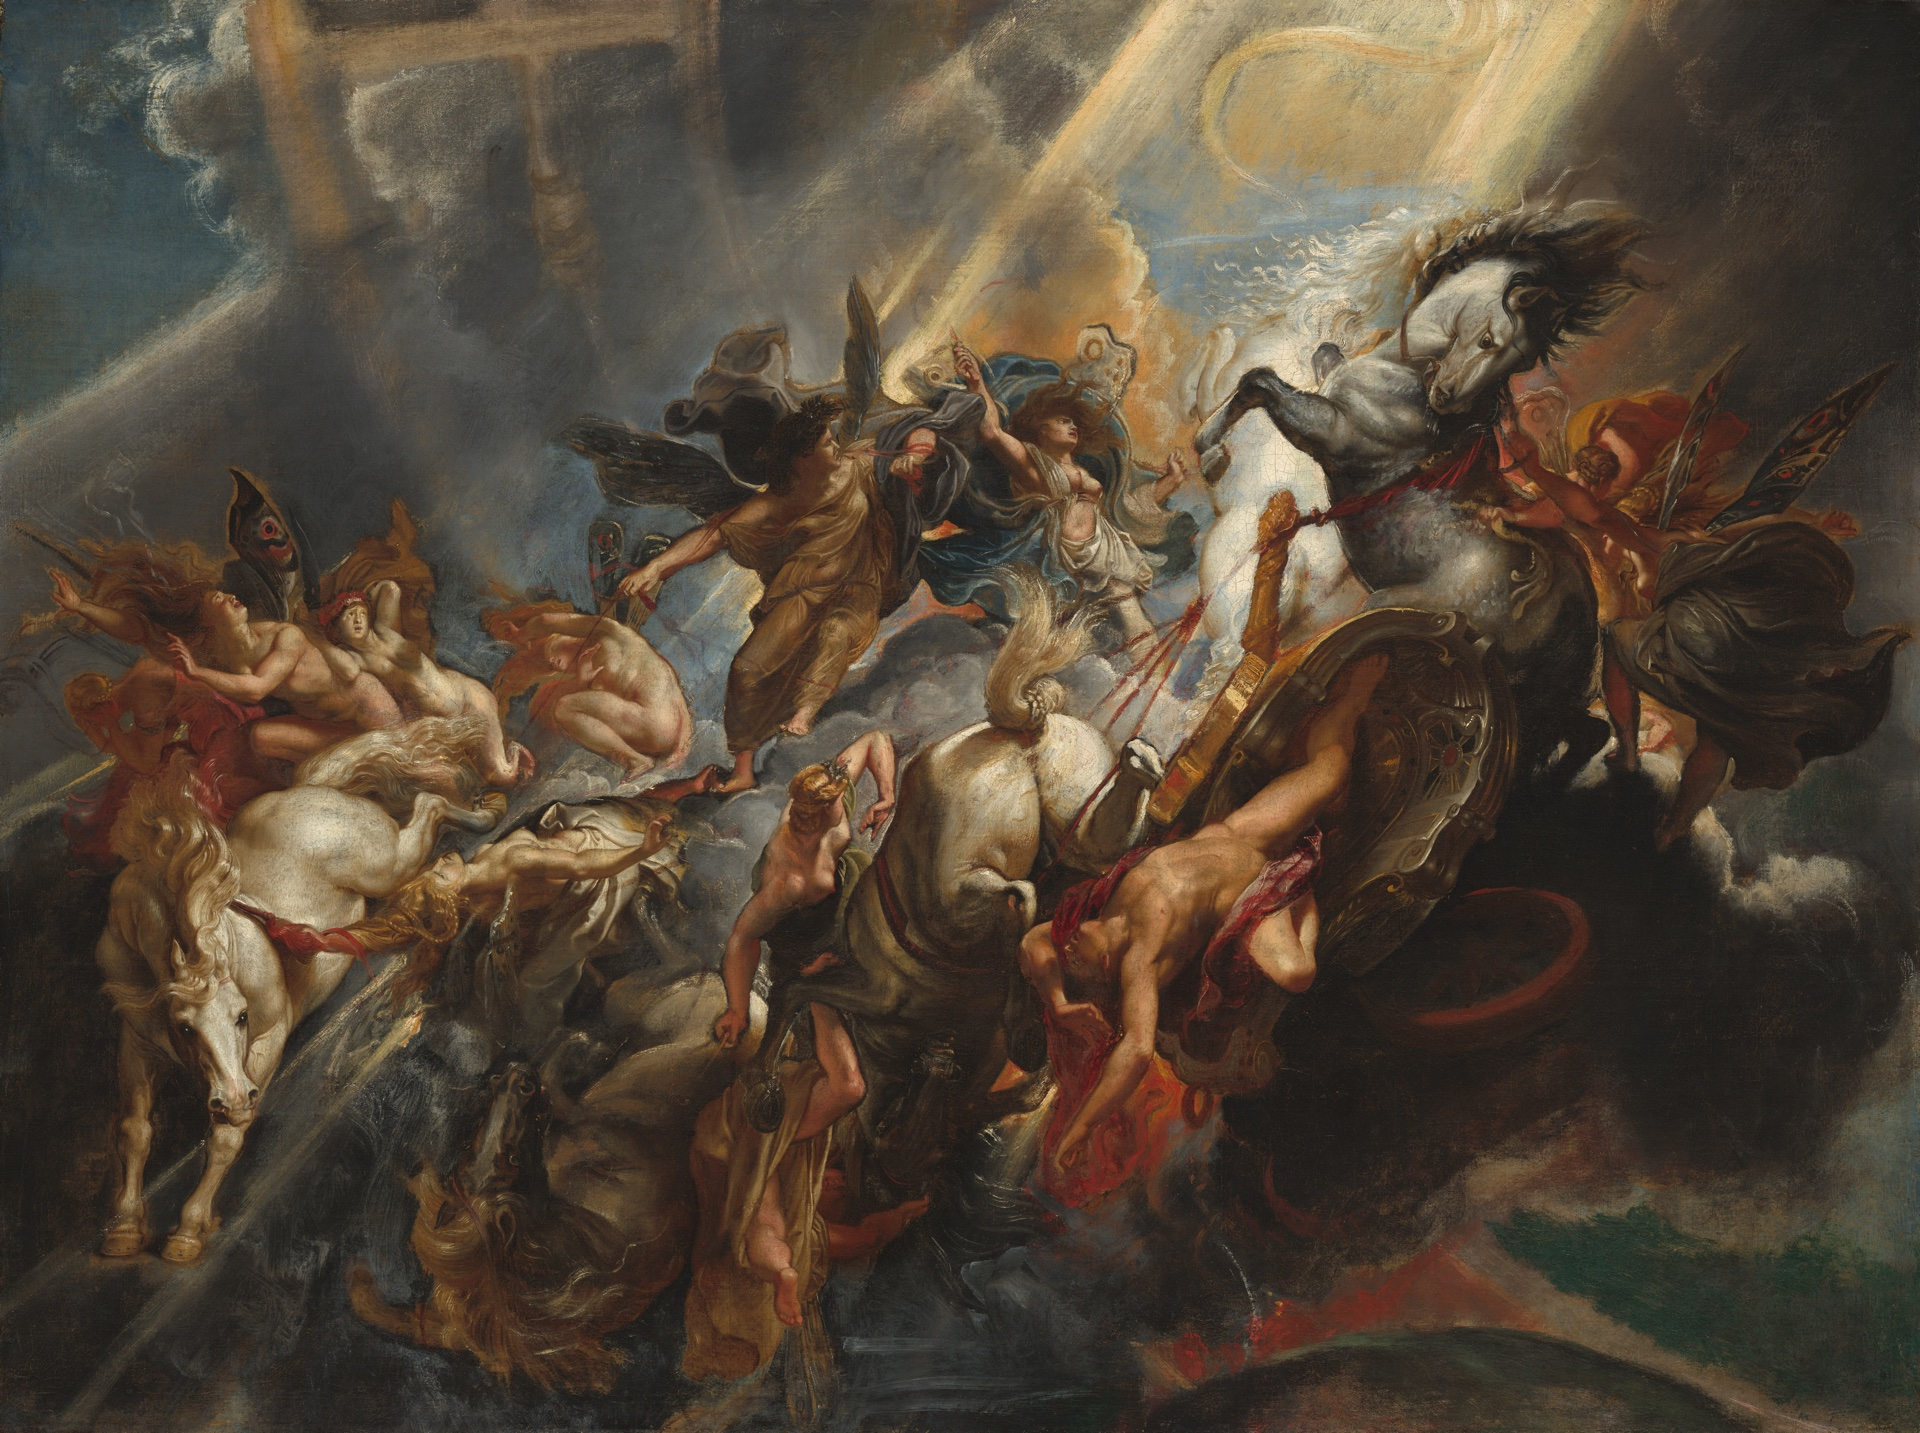 The Fall of Phaeton by Peter Paul Rubens, c. 1604/1605. National Gallery of Art.